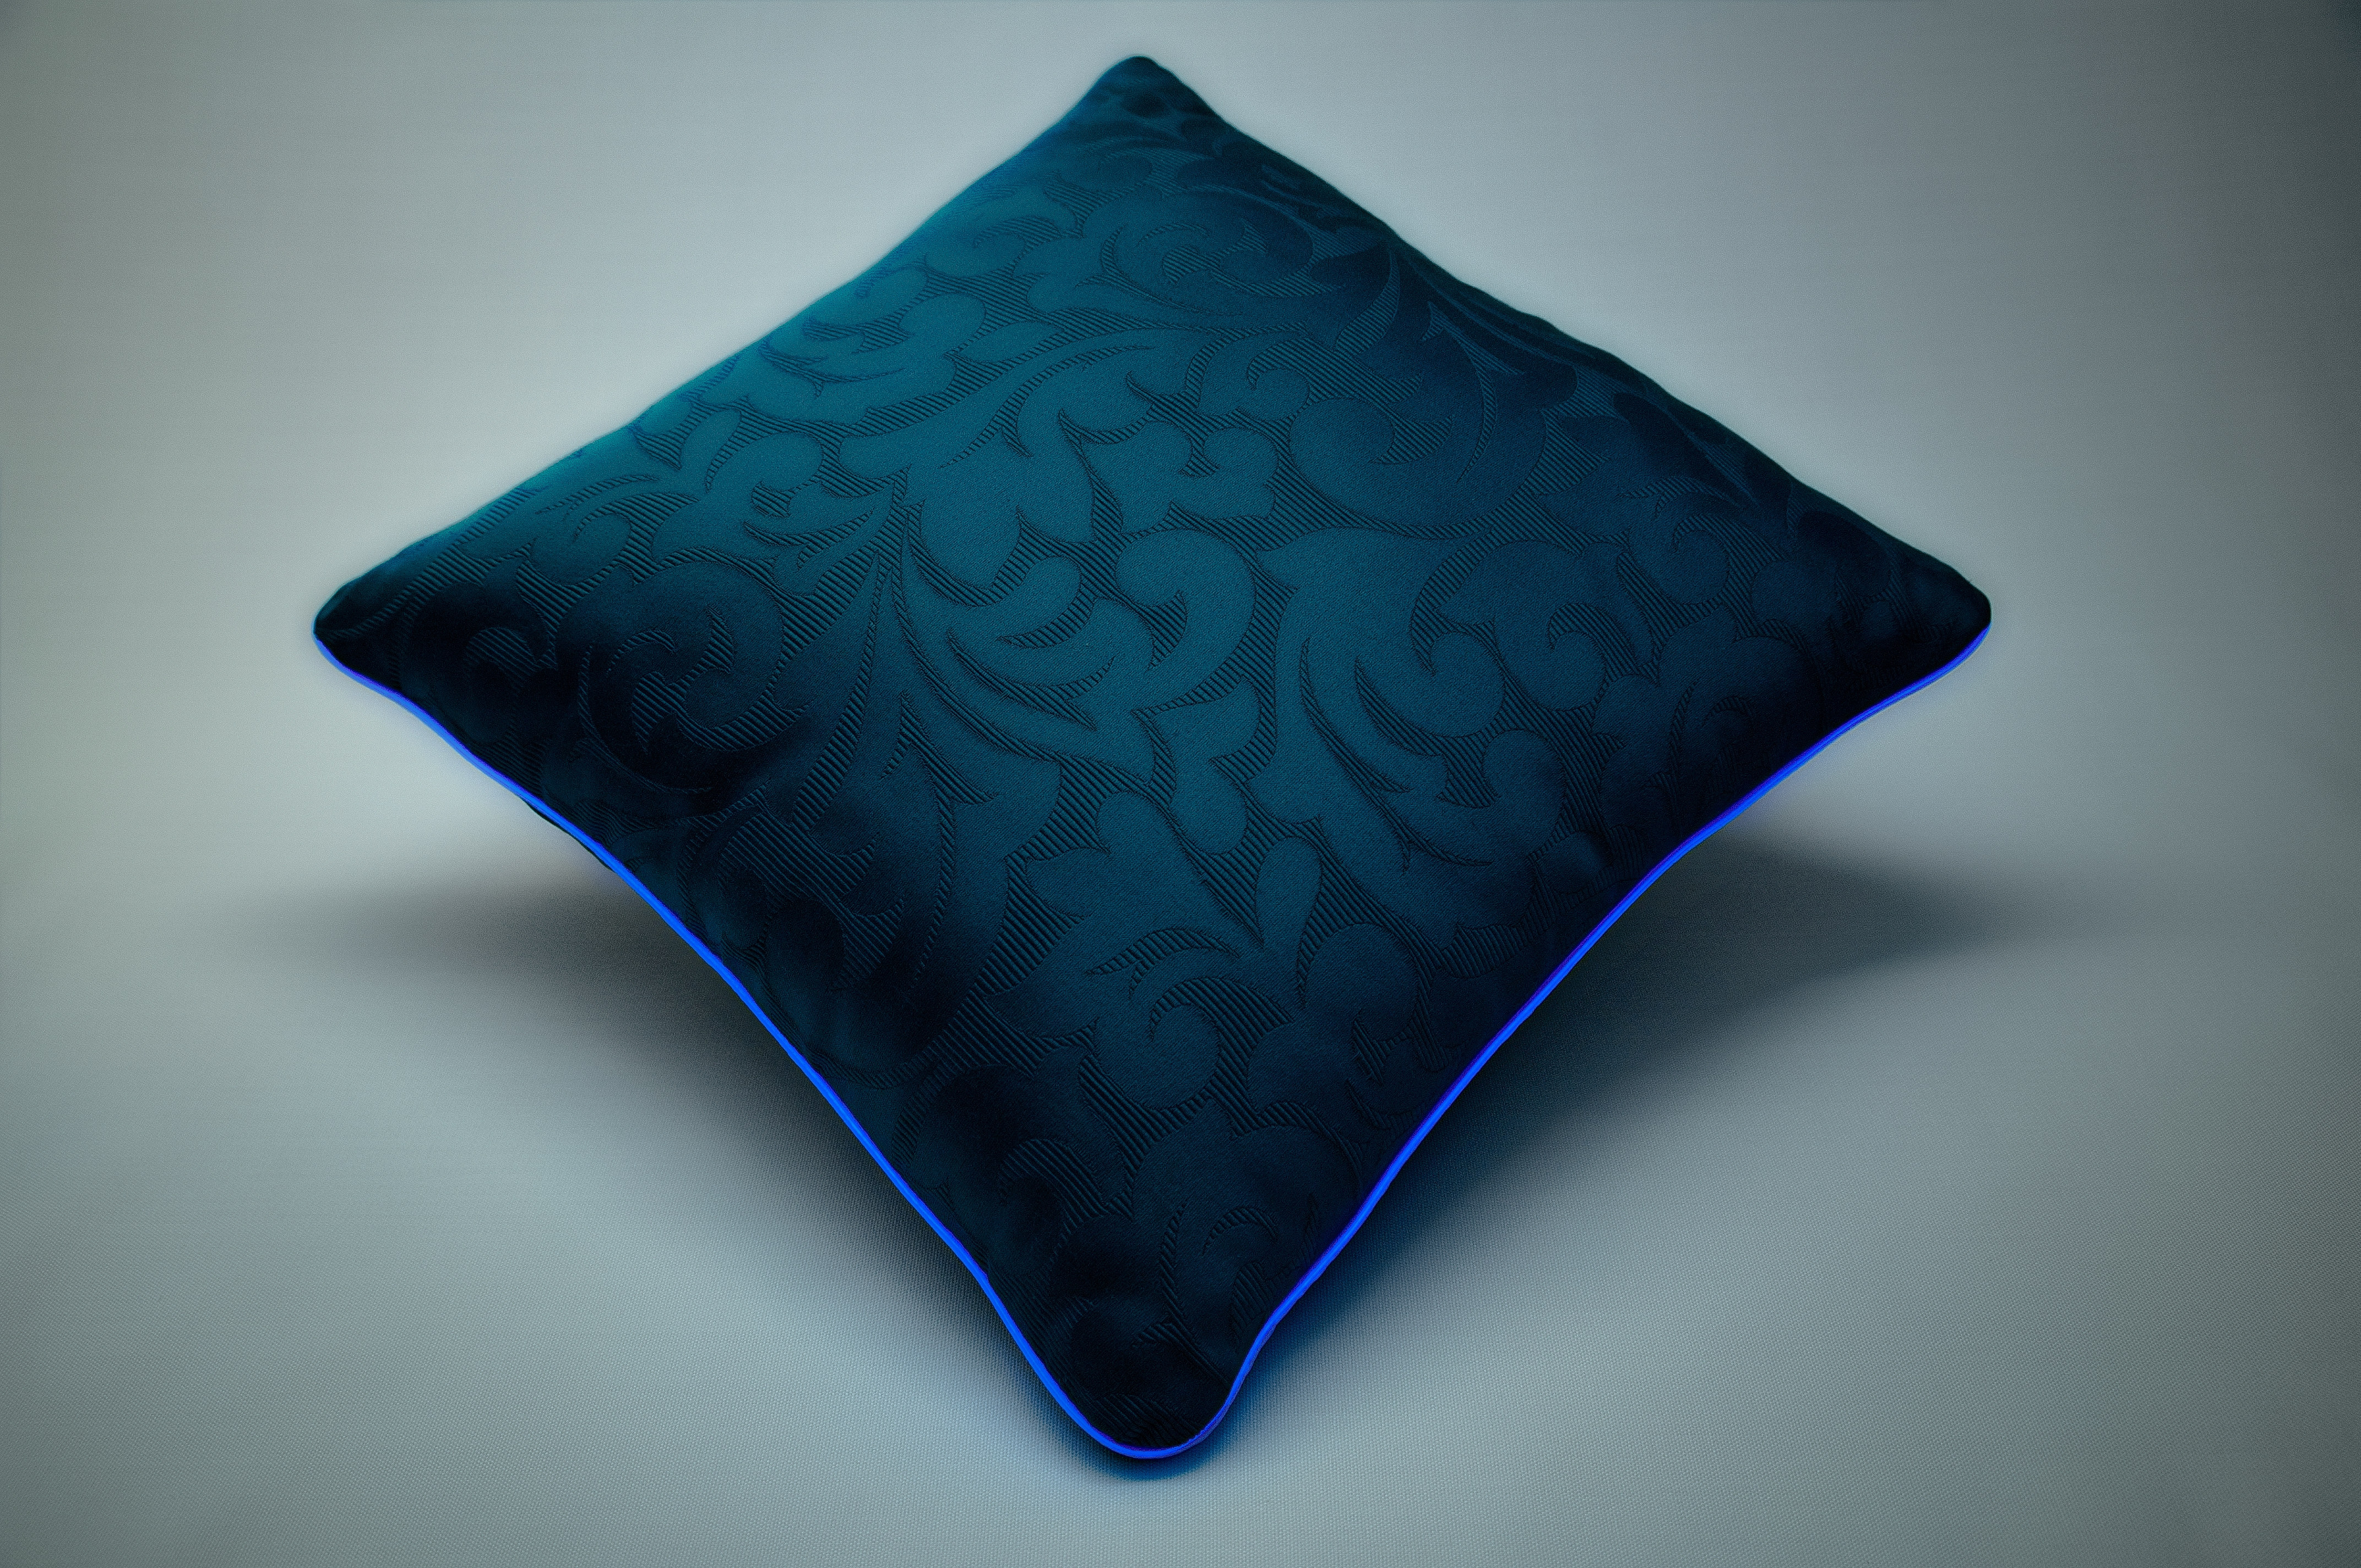 Cuscino luminoso Blue Jacquard